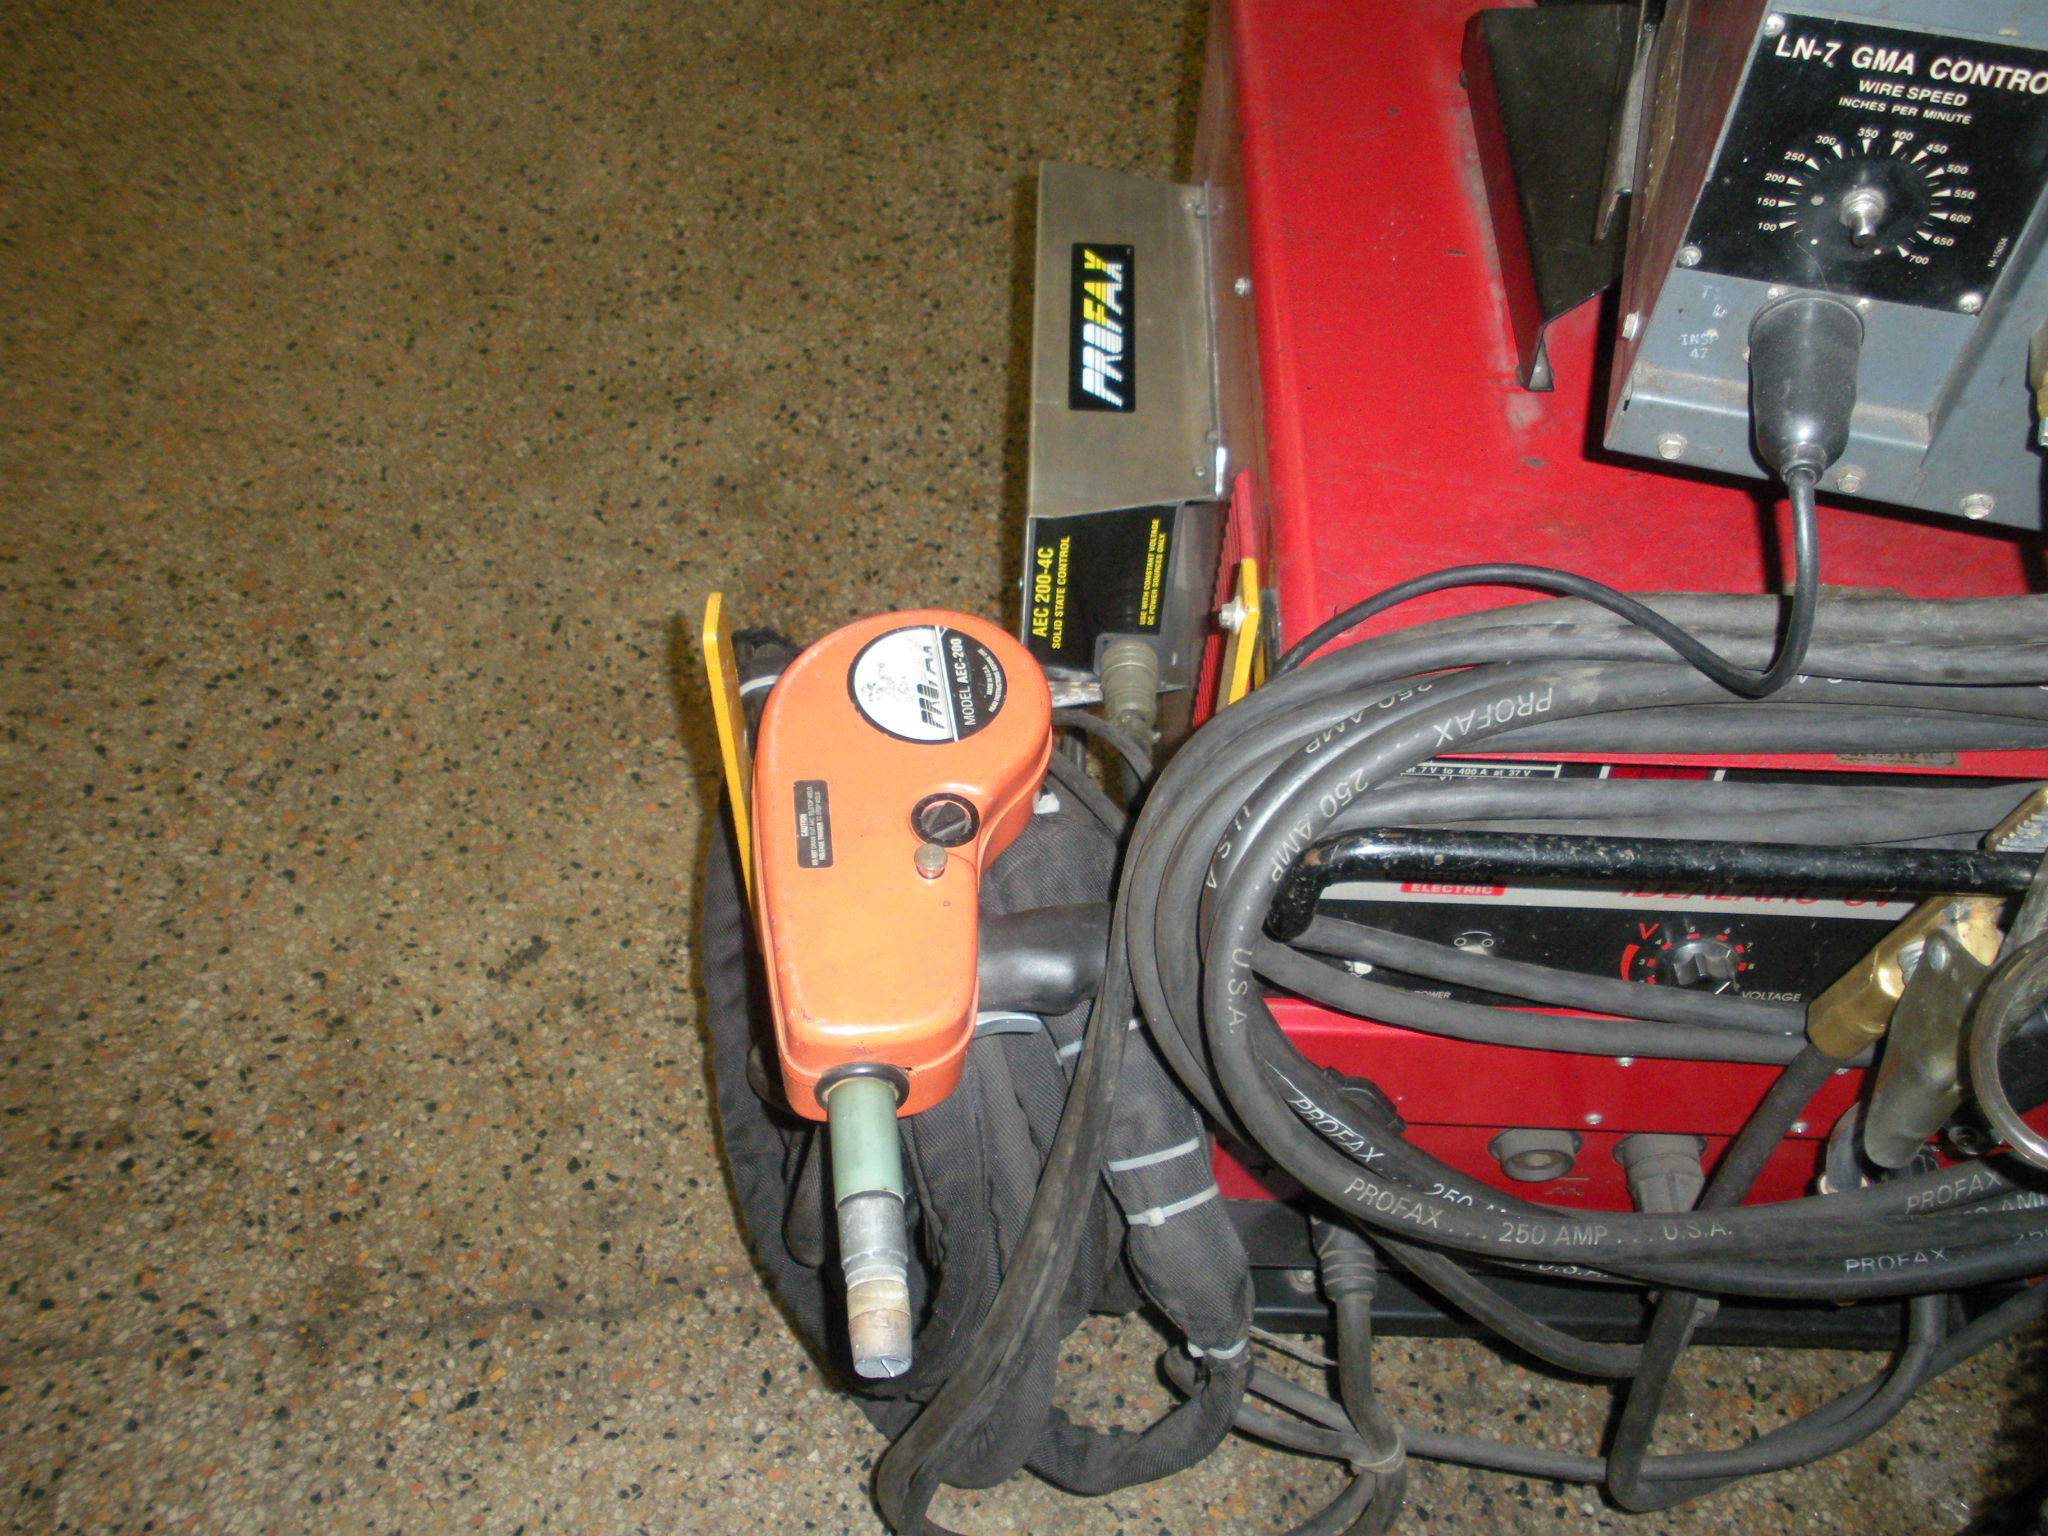 Lincoln Electric Idealarc CV-300 MIG Welder with LN7 Feed and Profax AEC 200-4C Feed.